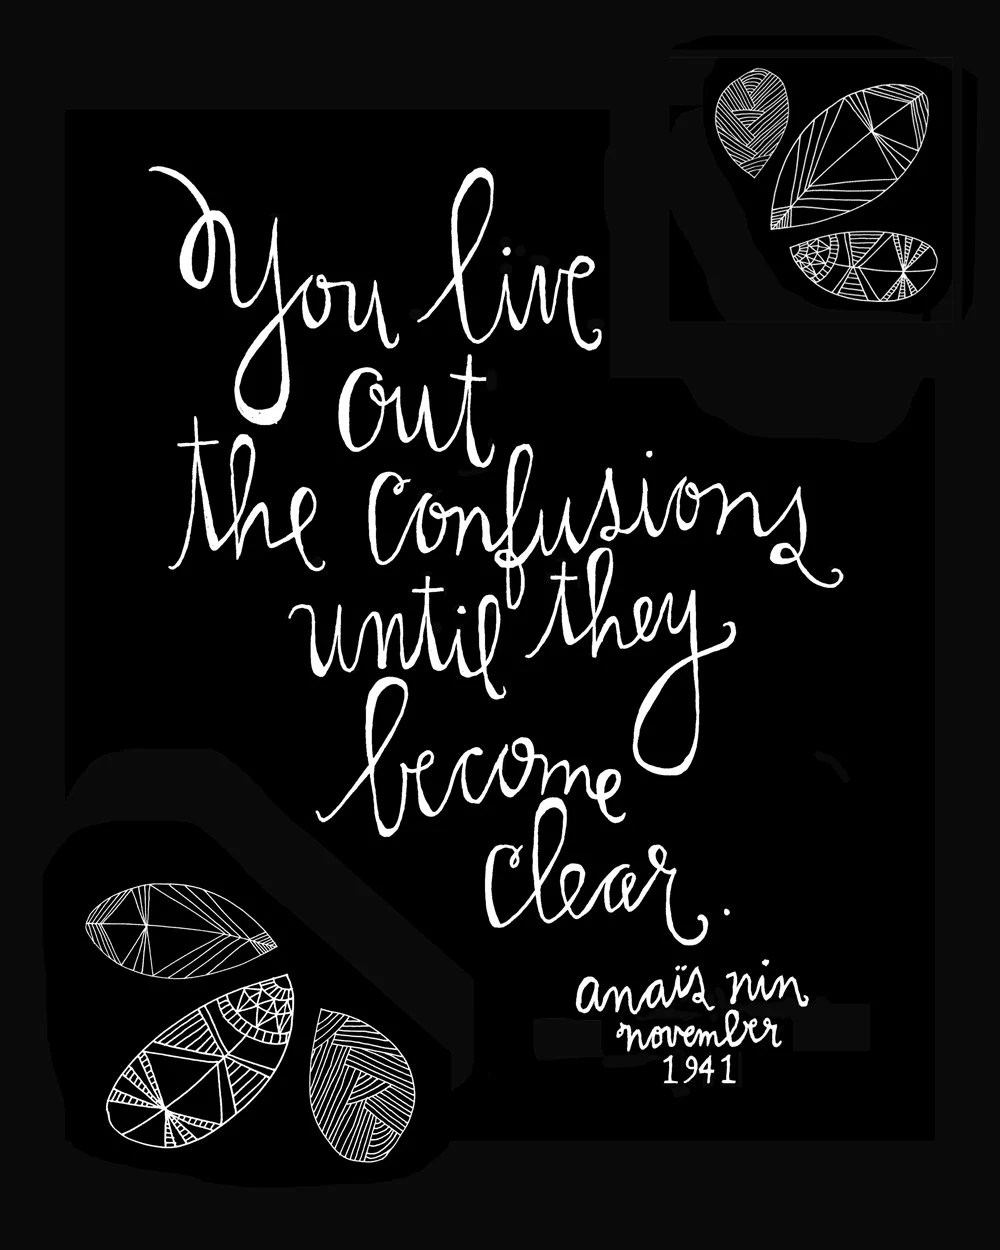 Anais Nin Quote - Live Out Confusions Print - Standard Size